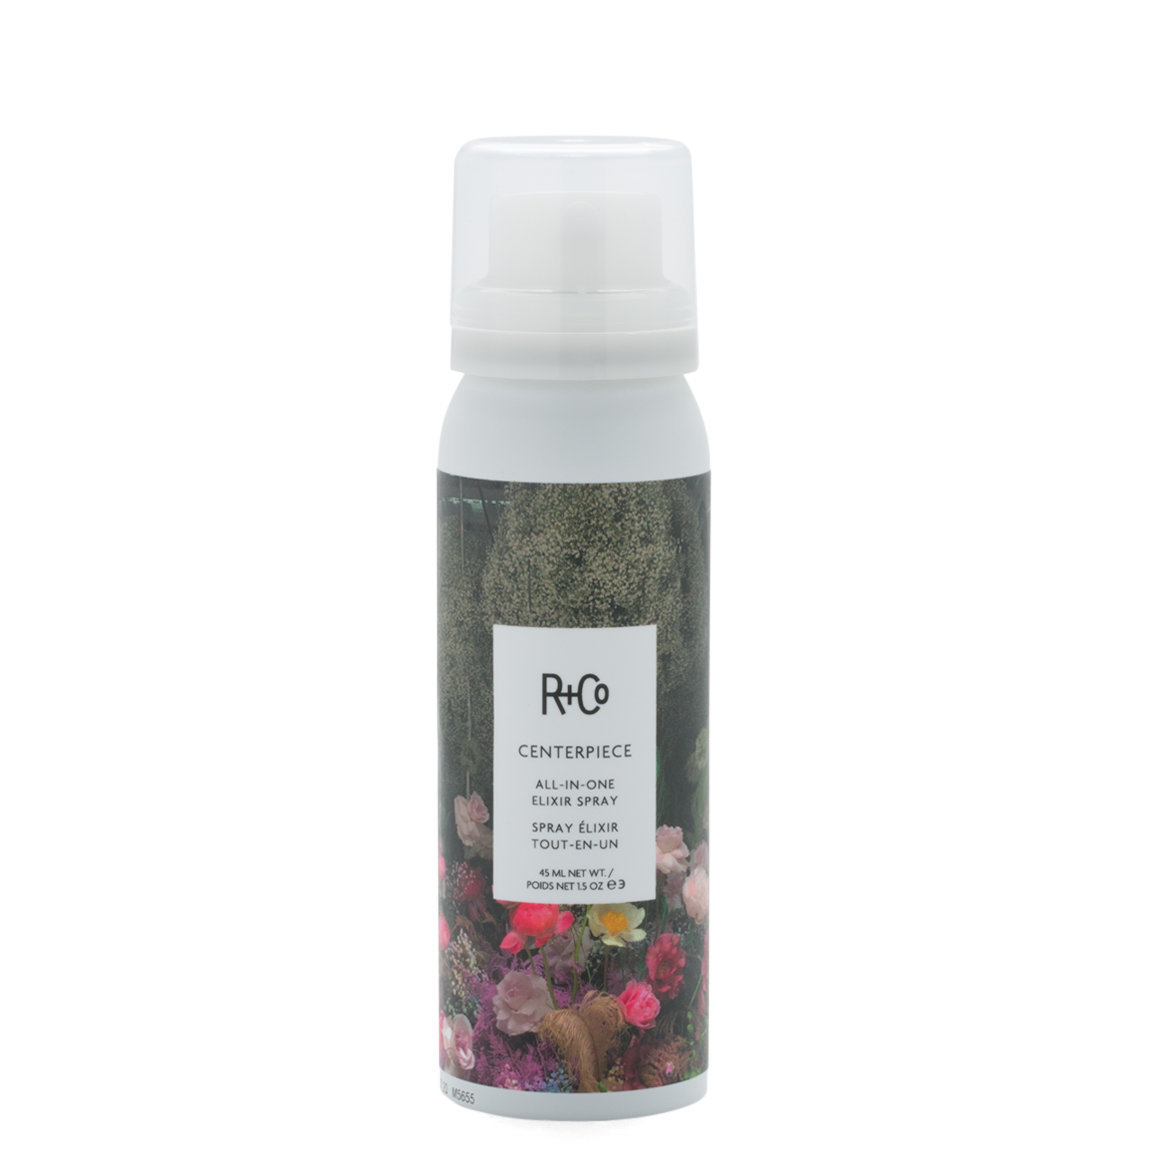 R+Co Centerpiece All in One Elixir 2 oz product smear.